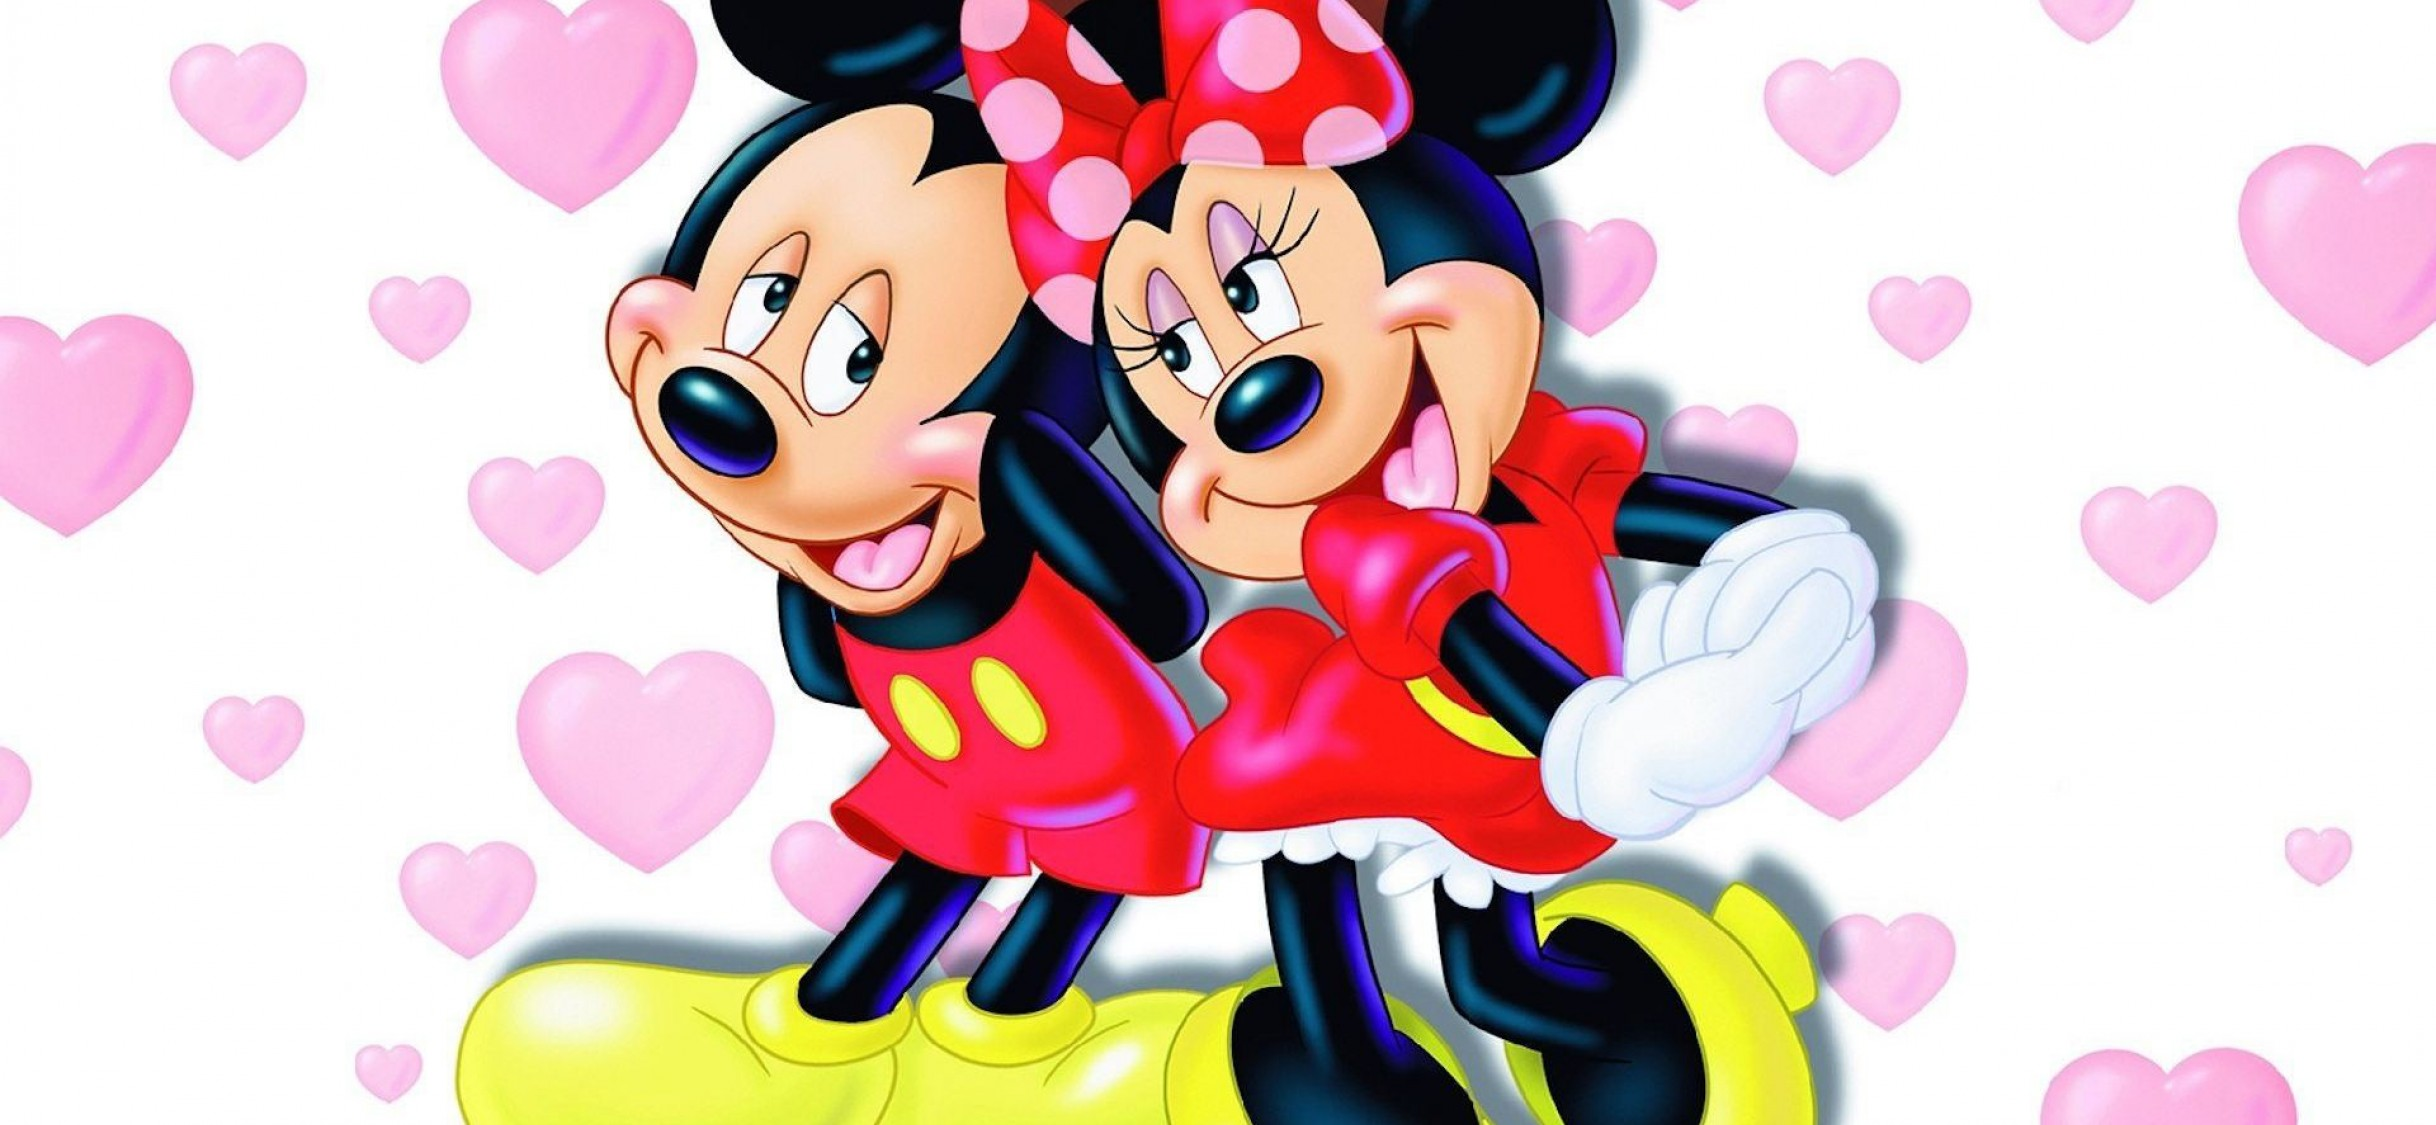 Mickey And Minnie Mouse Hd Wallpaper For Desktop Mobiles Iphone